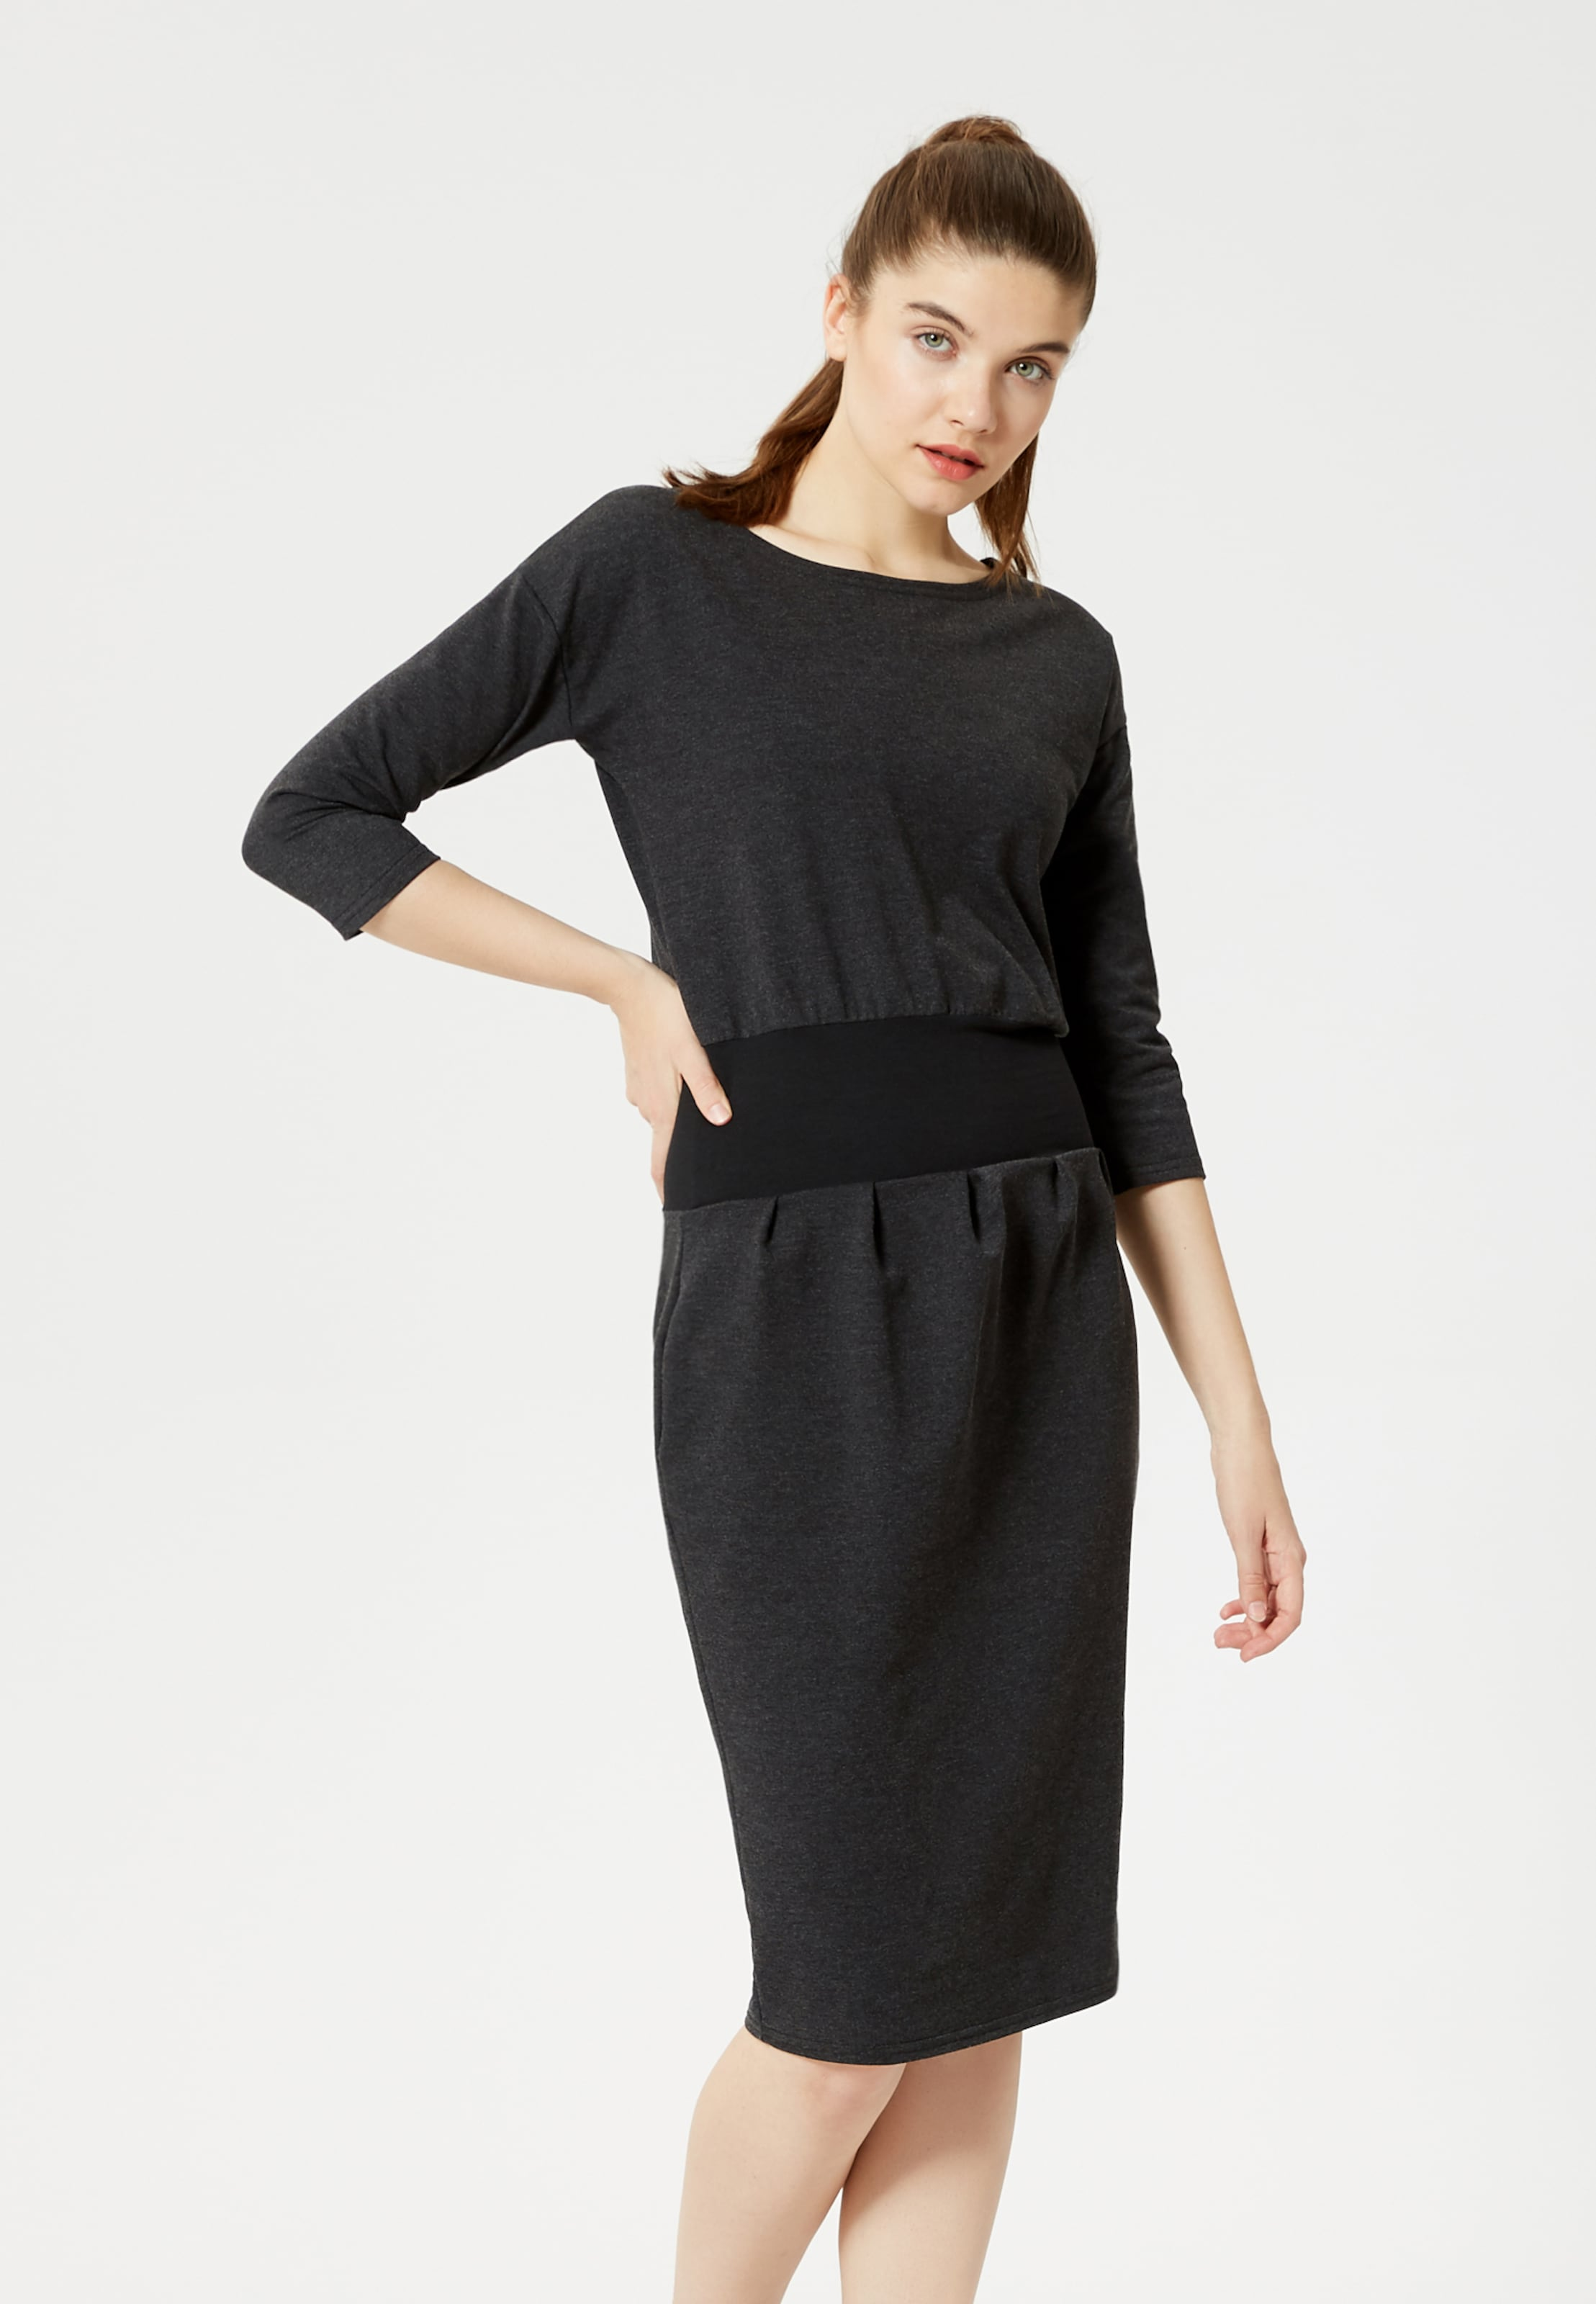 Anthracite Talence En Anthracite Talence Robe En Talence Robe Talence Robe Robe En Anthracite En yvmNnwO8P0